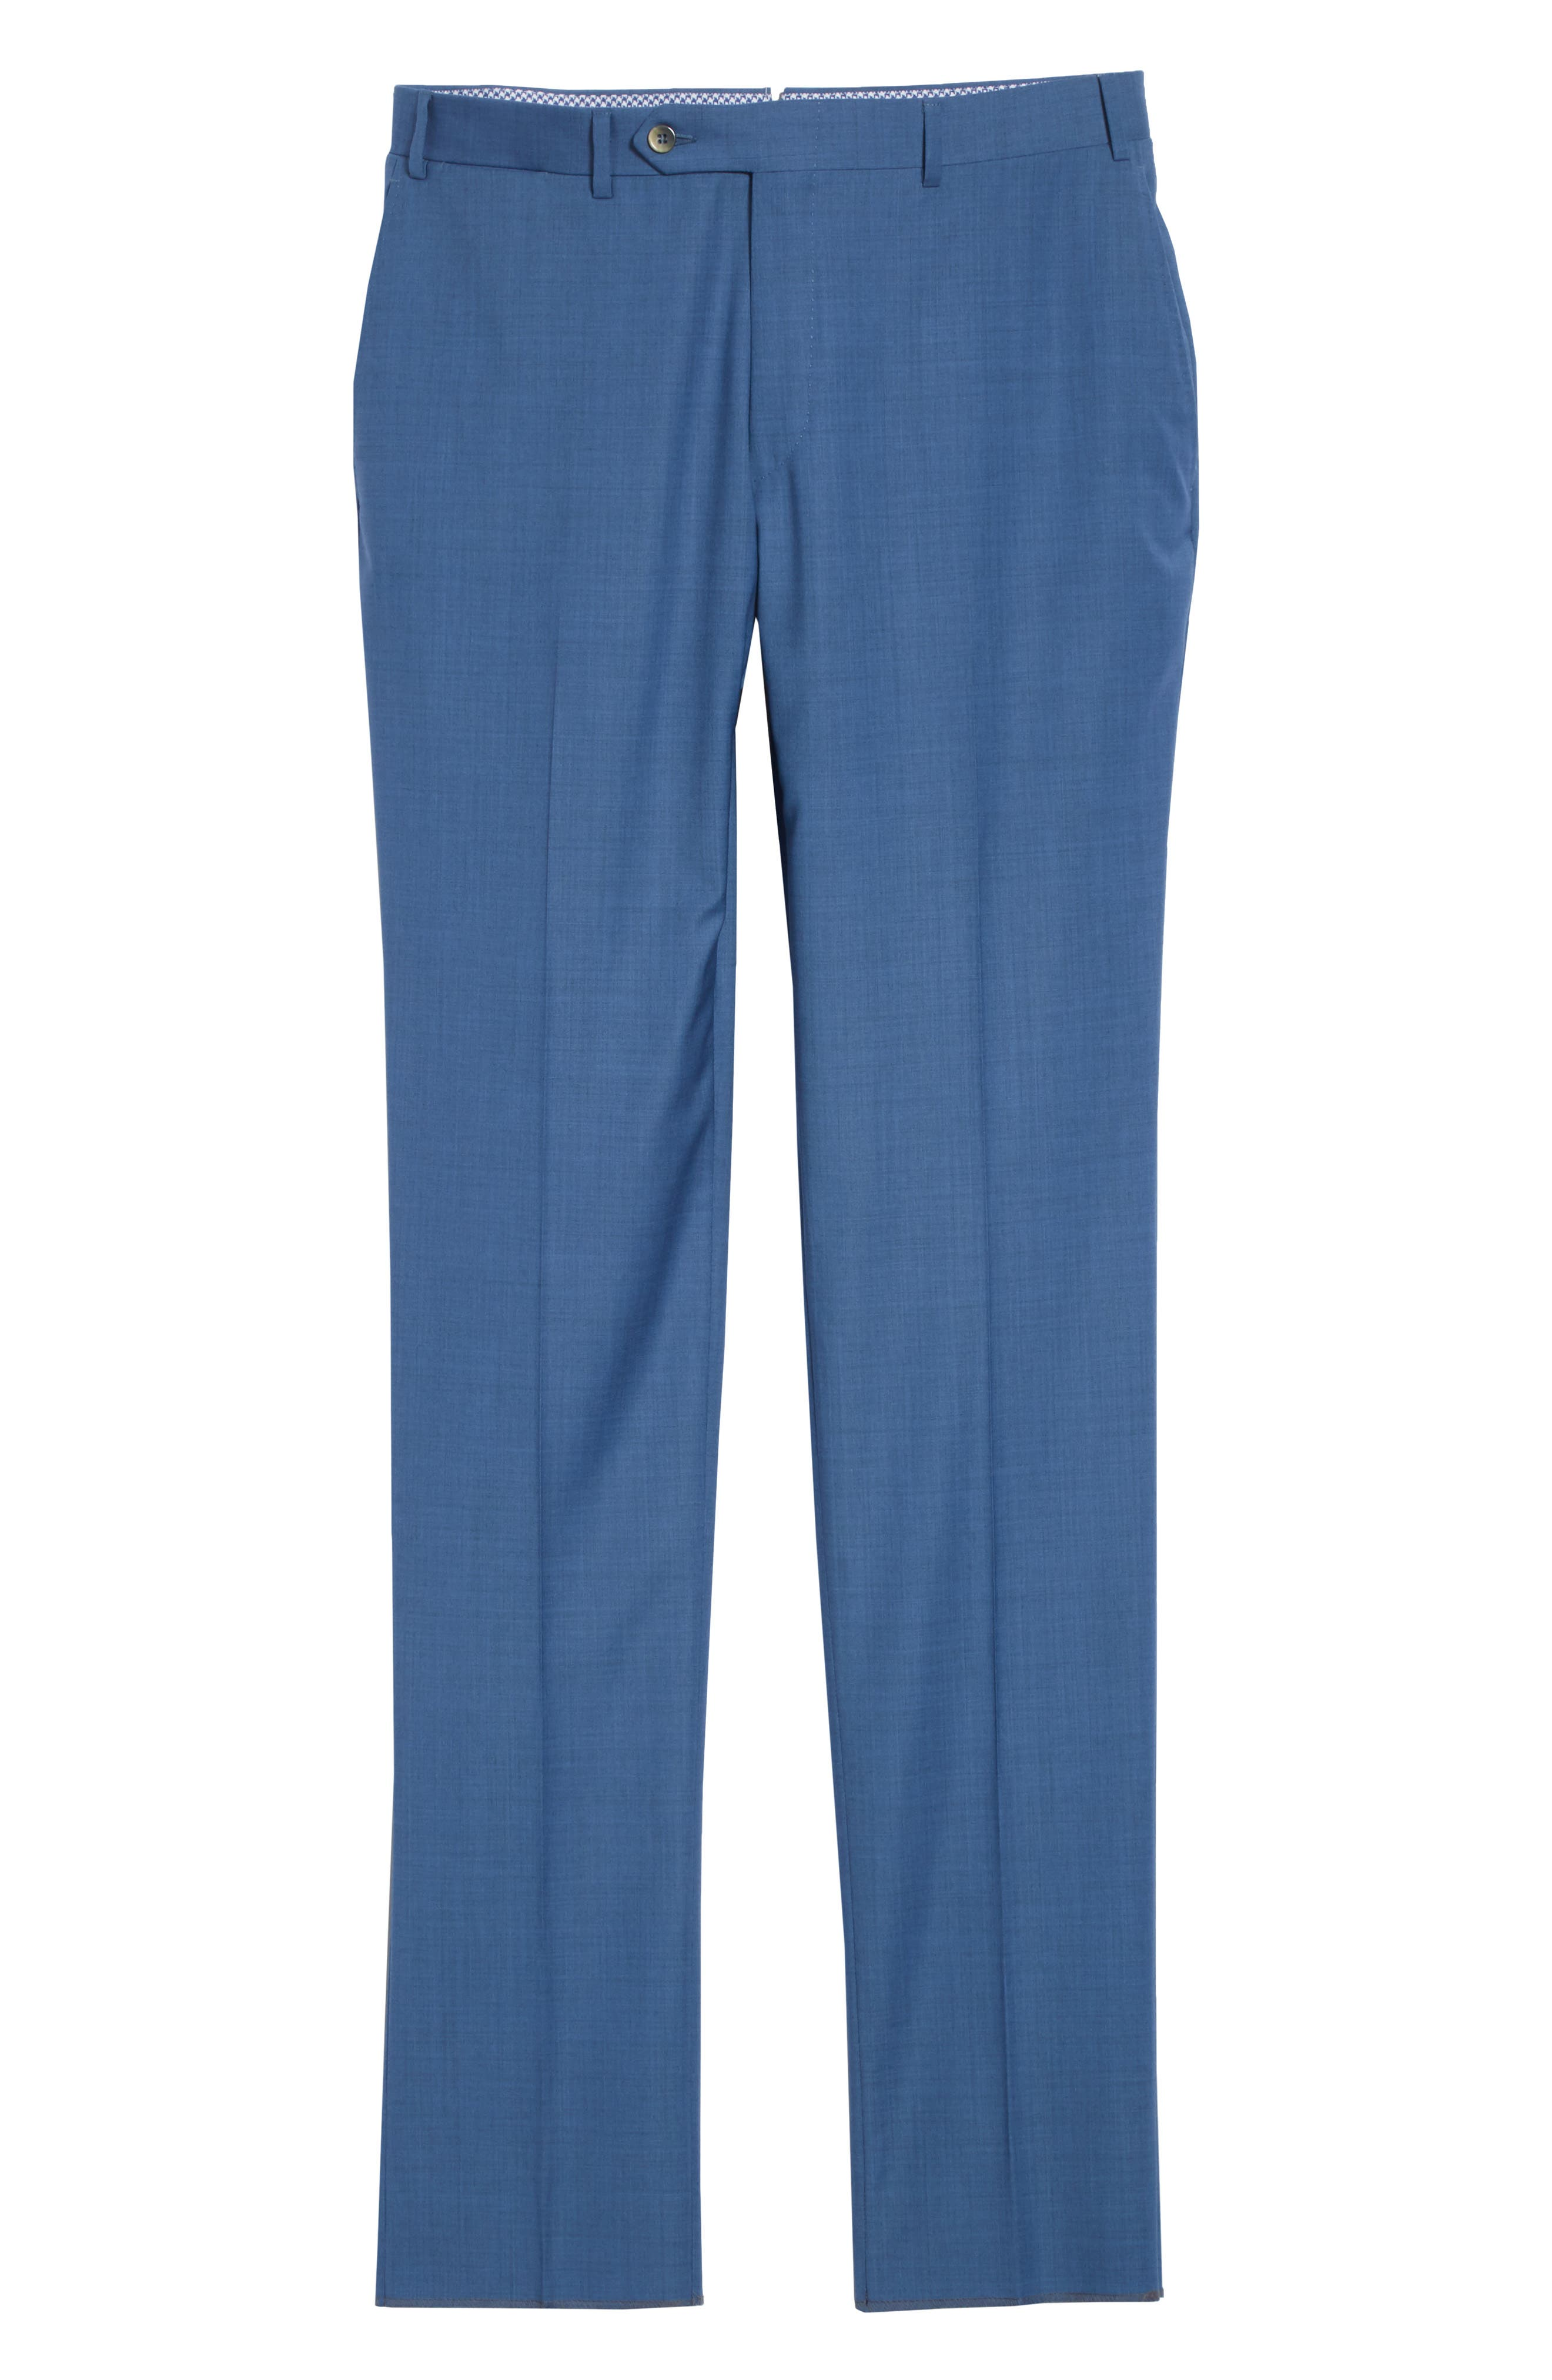 Kei Flat Front Solid Wool Trousers,                             Alternate thumbnail 18, color,